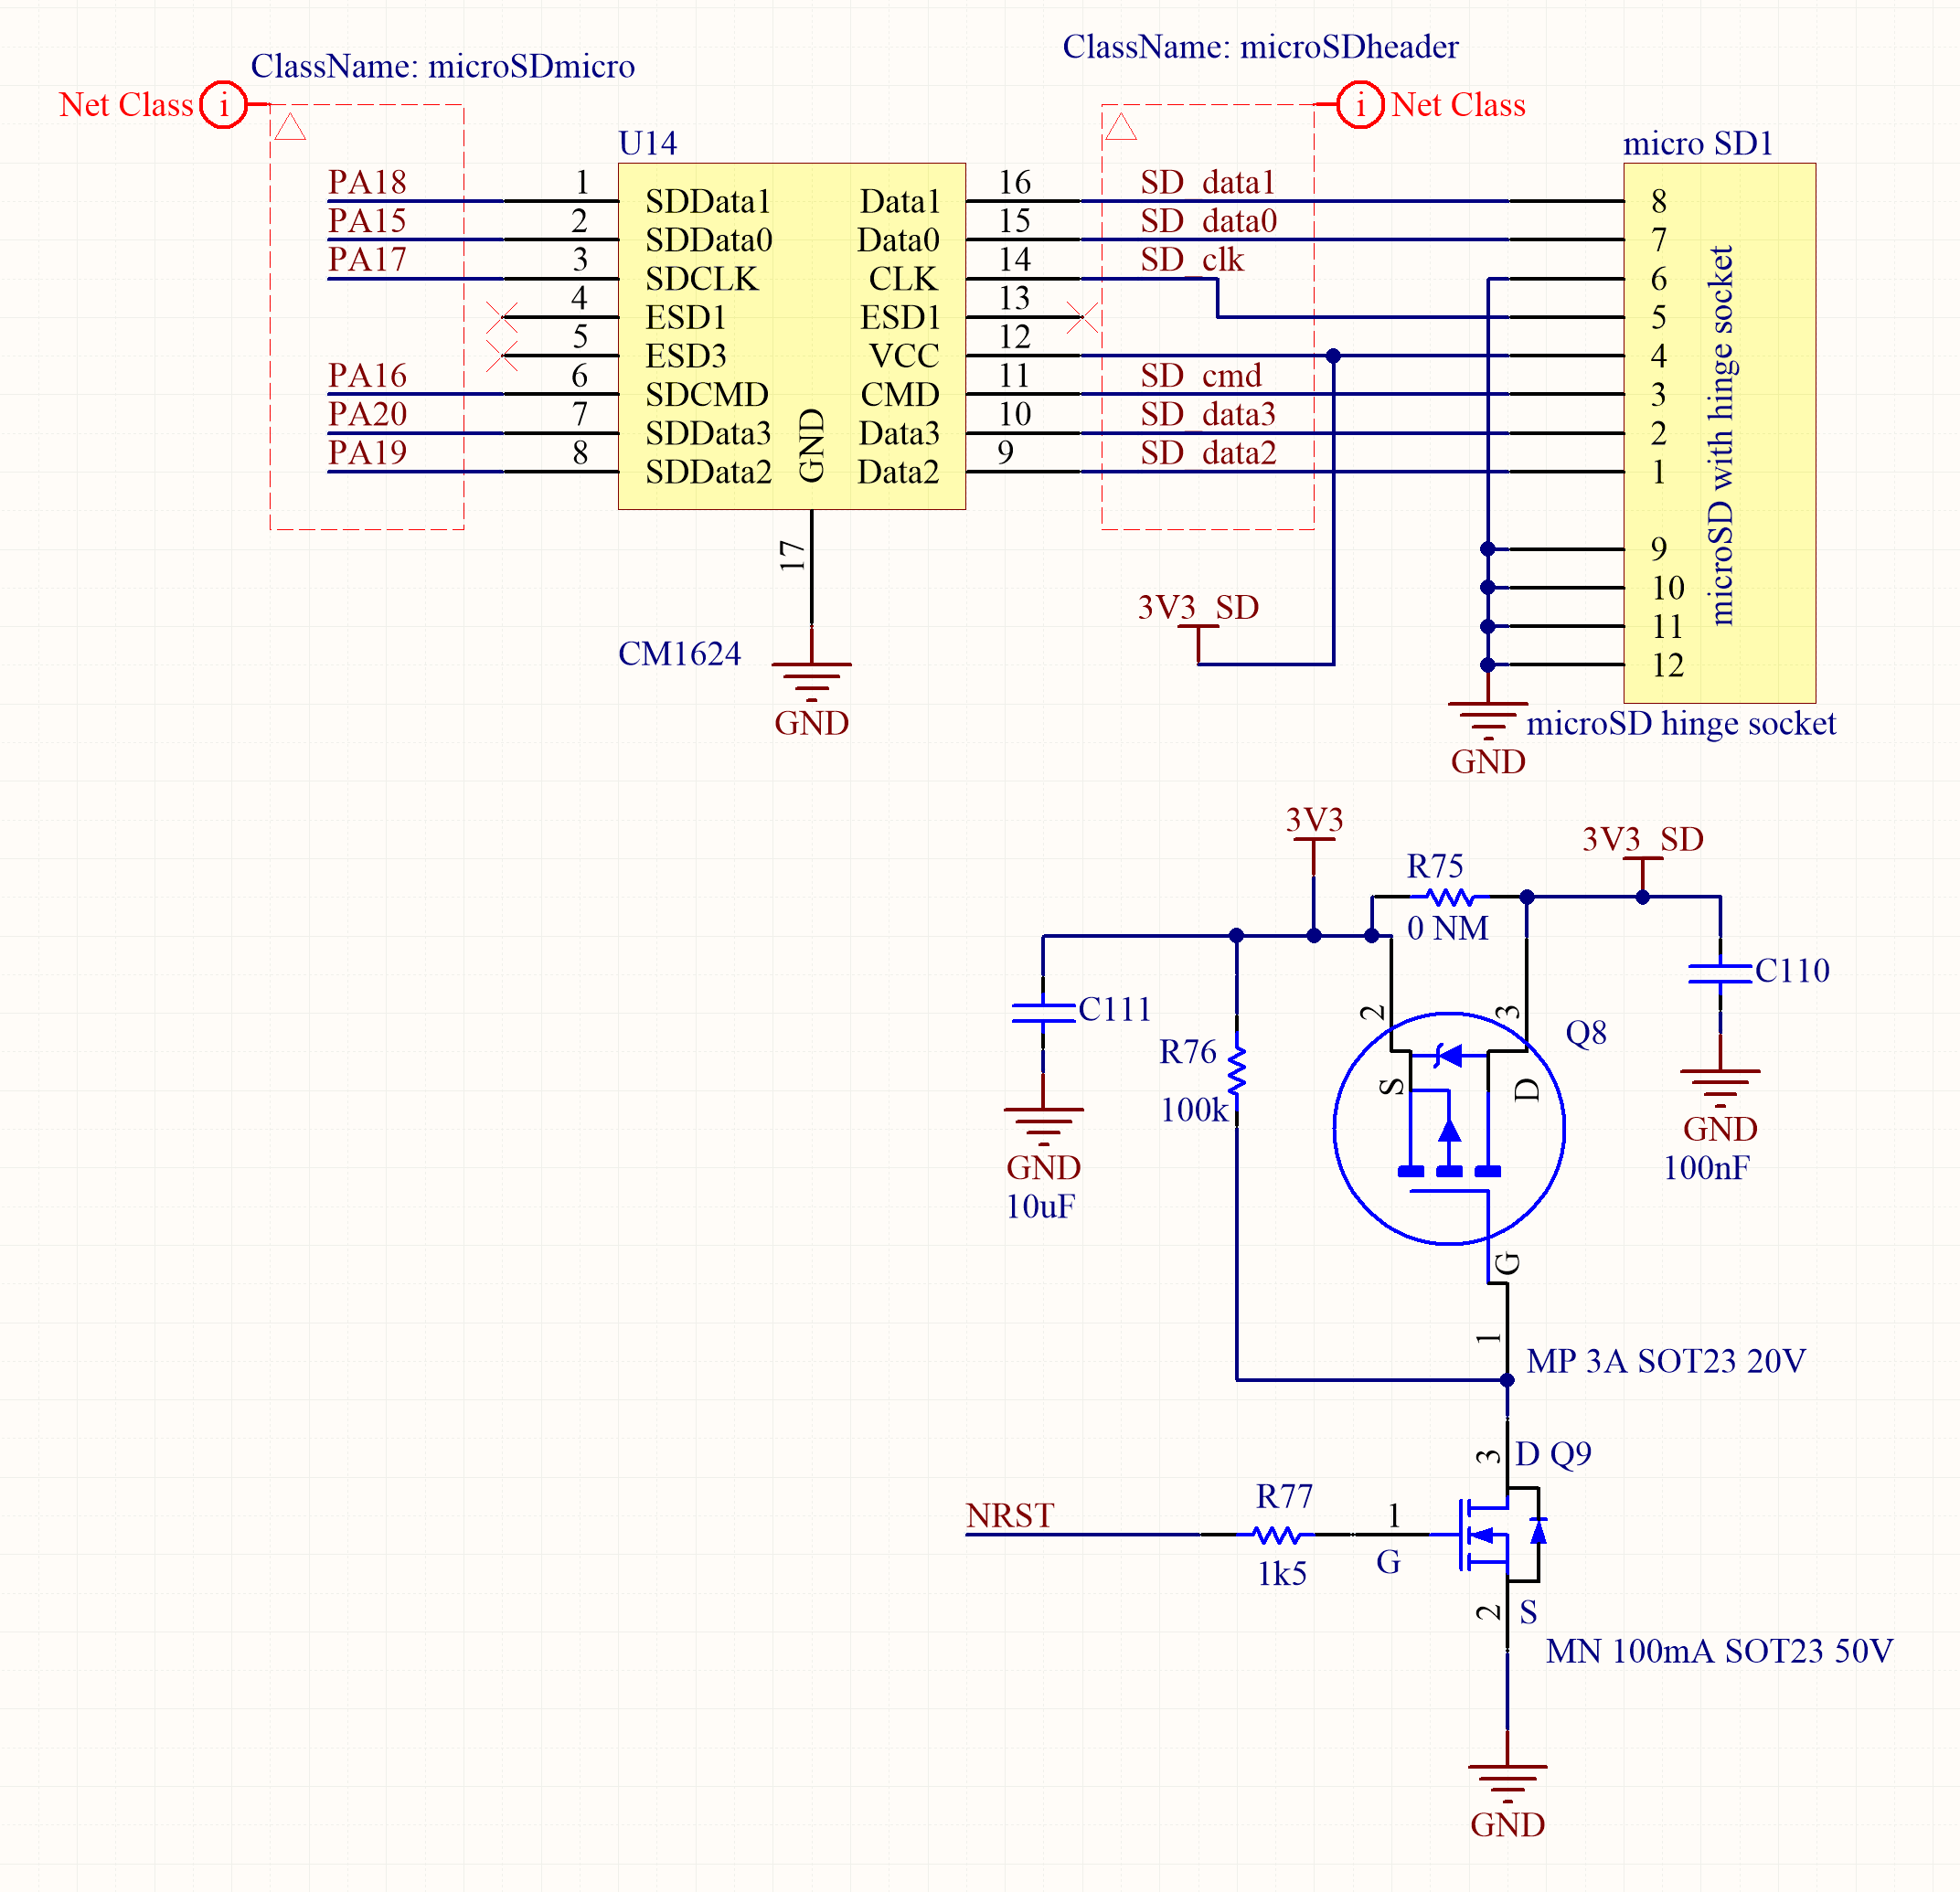 How to design the microSD circuitry Usb Sd Card Adapter Wiring Diagram on dvi cable wiring diagram, parallel cable wiring diagram, cat5 cable wiring diagram, network cable wiring diagram, data cable wiring diagram, displayport to dvi wiring diagram,